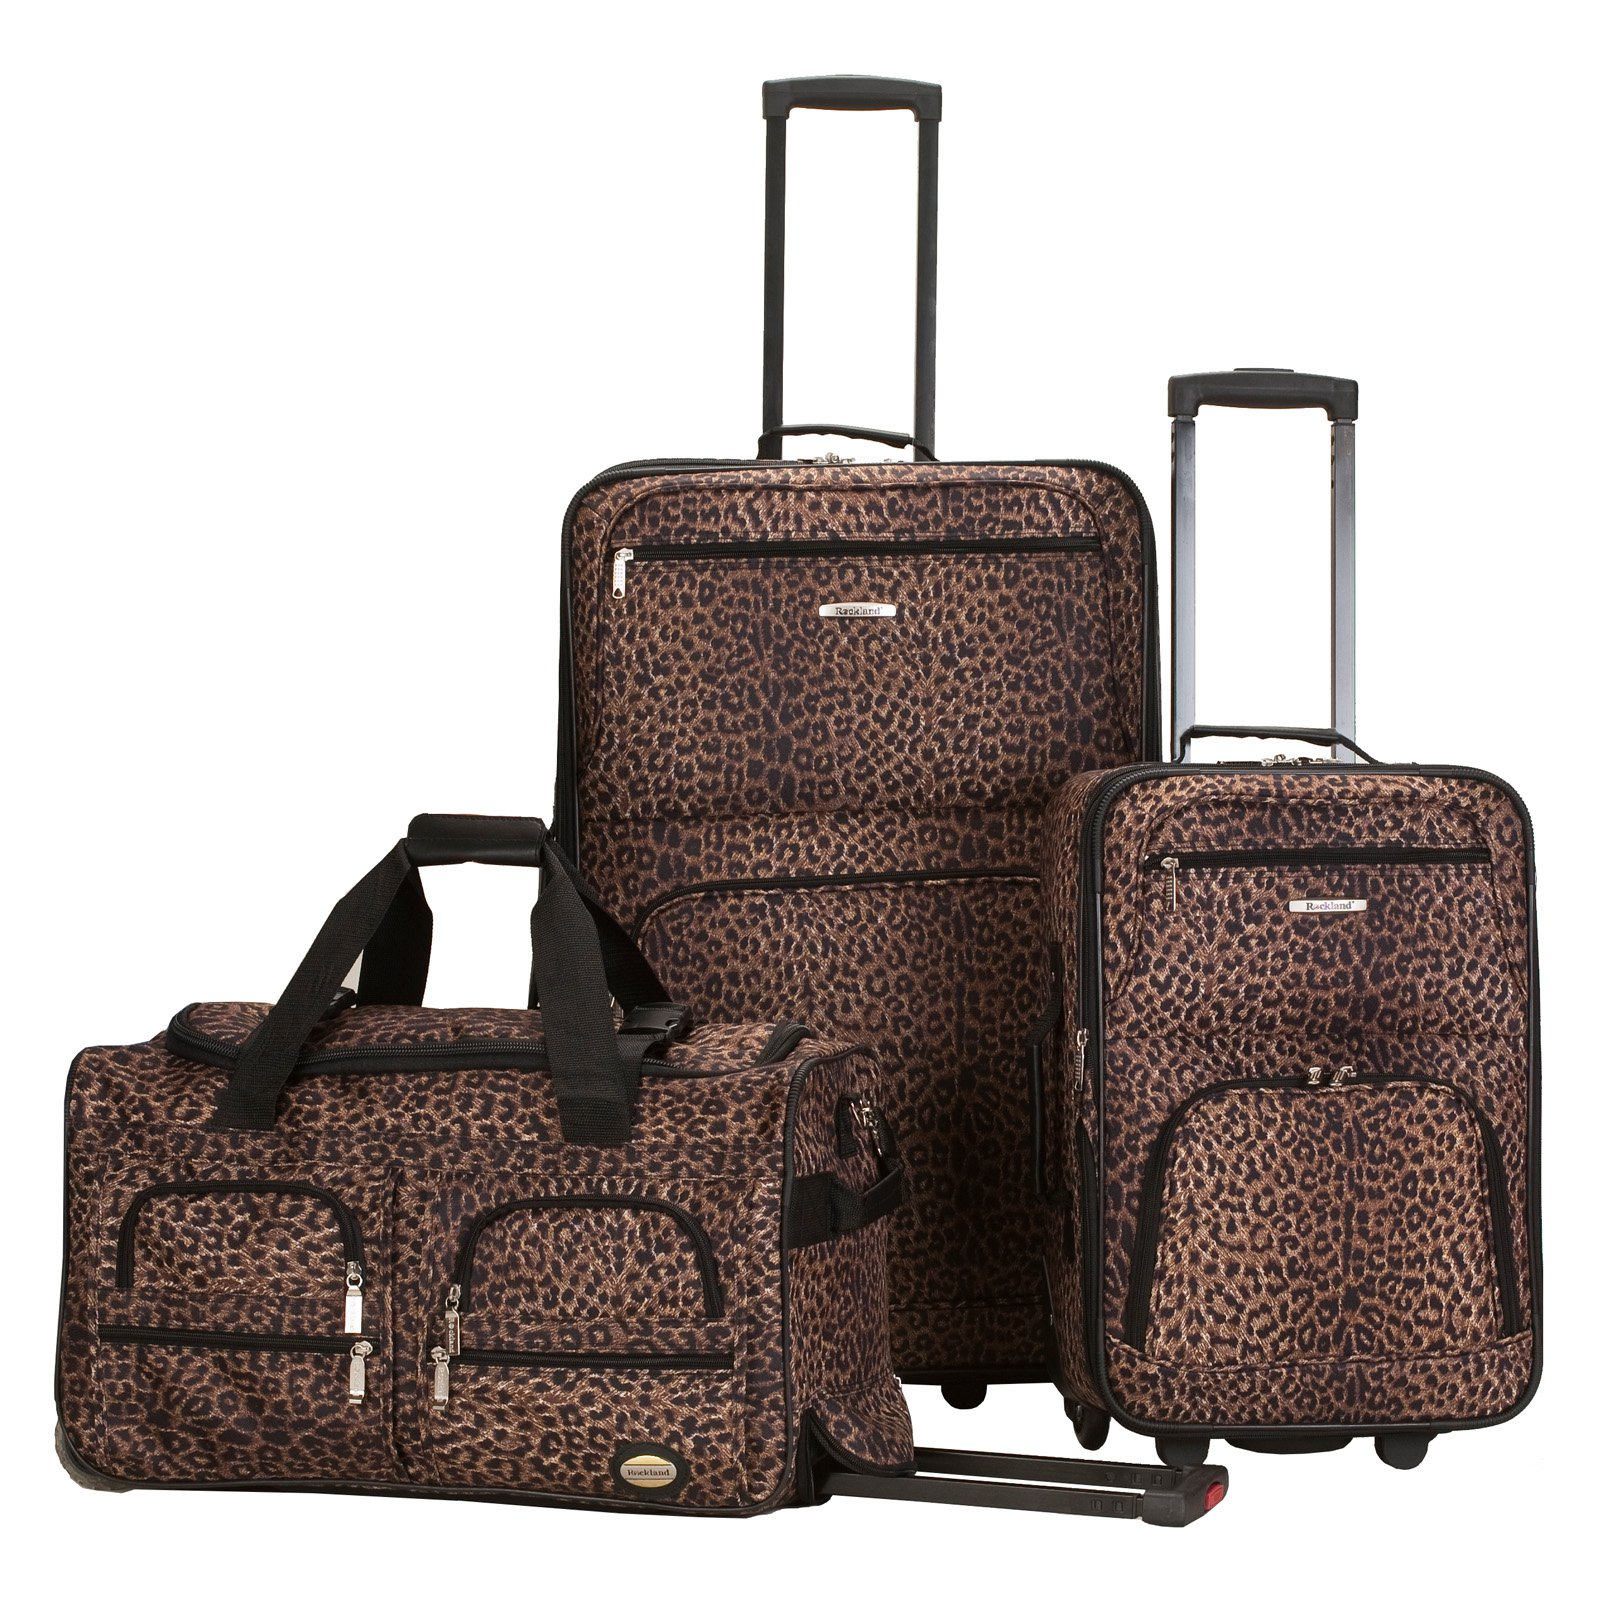 Rockland Luggage 3-Piece Animal Print Luggage Set